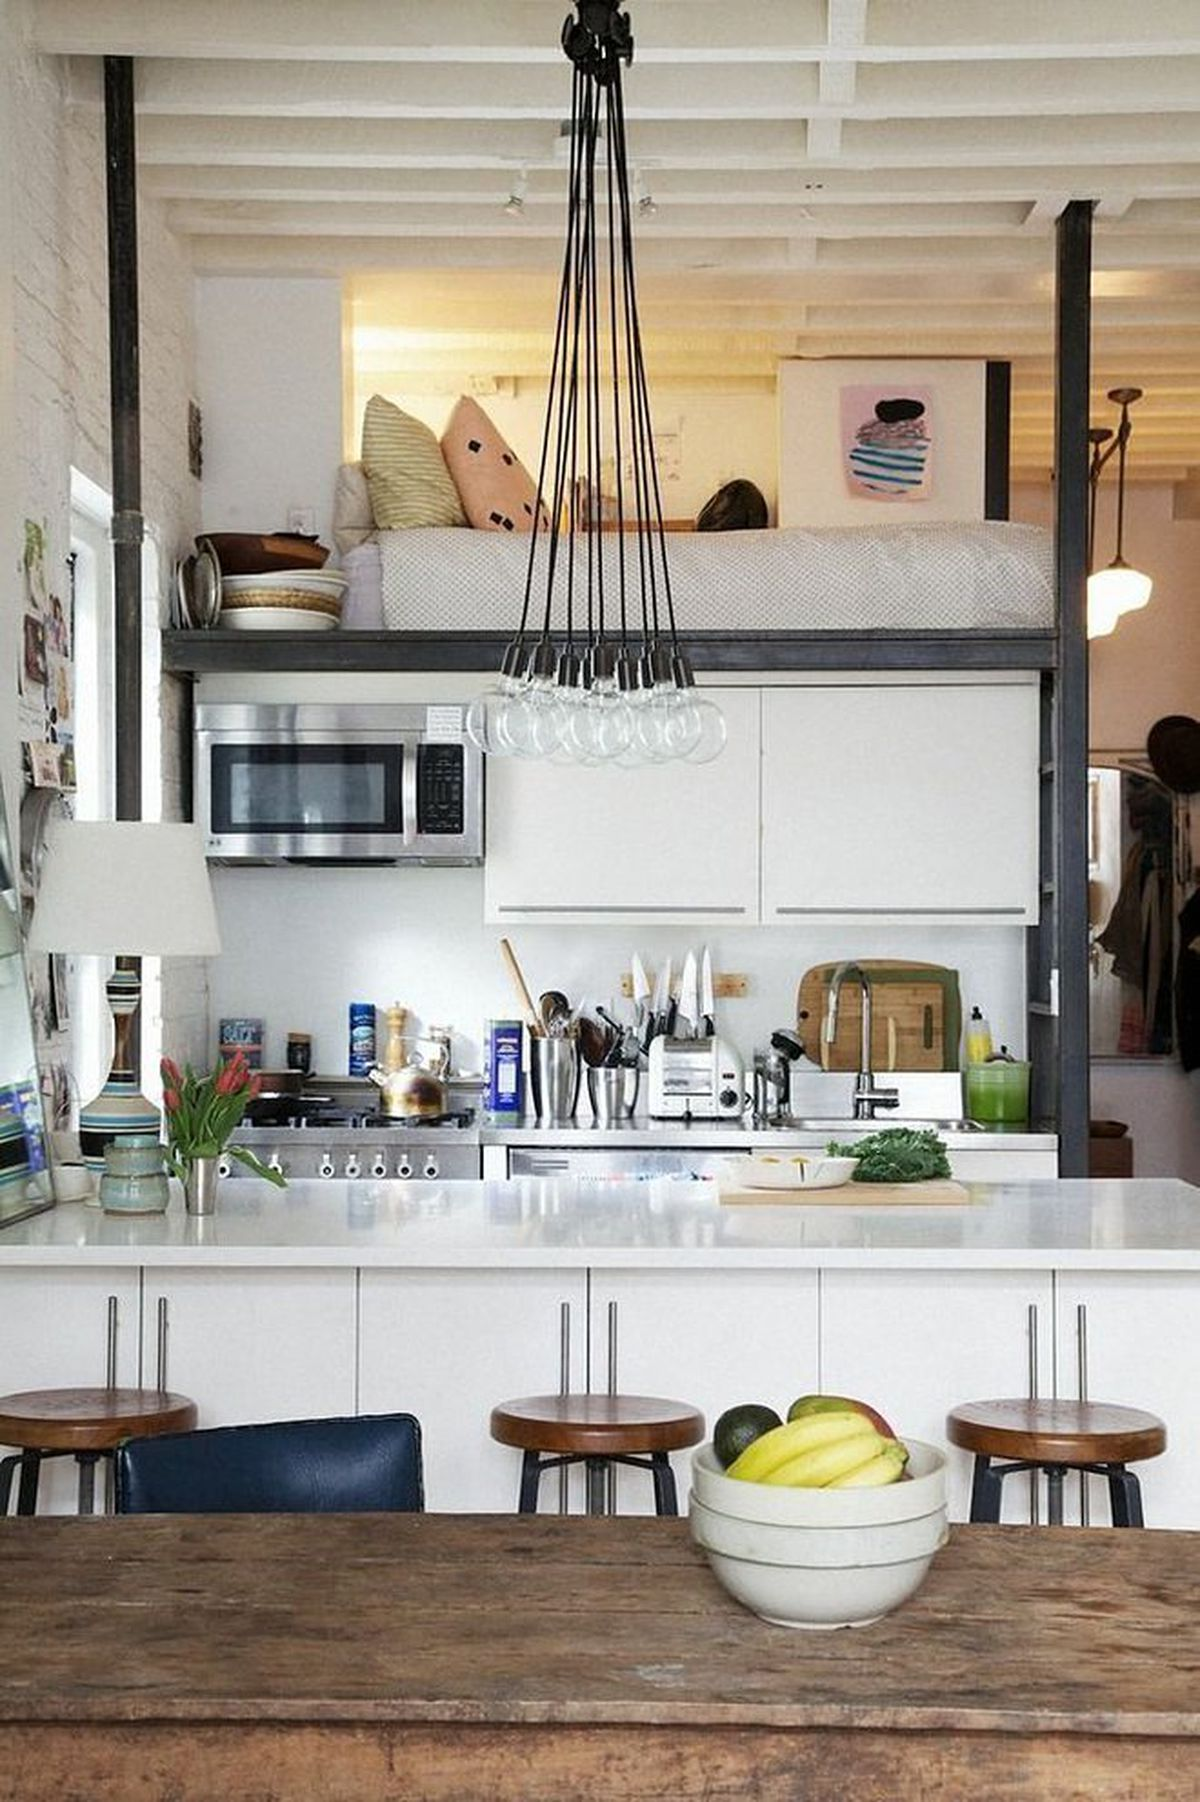 24 Small Spaces With Wonderful Maximalist Decorating Curbed